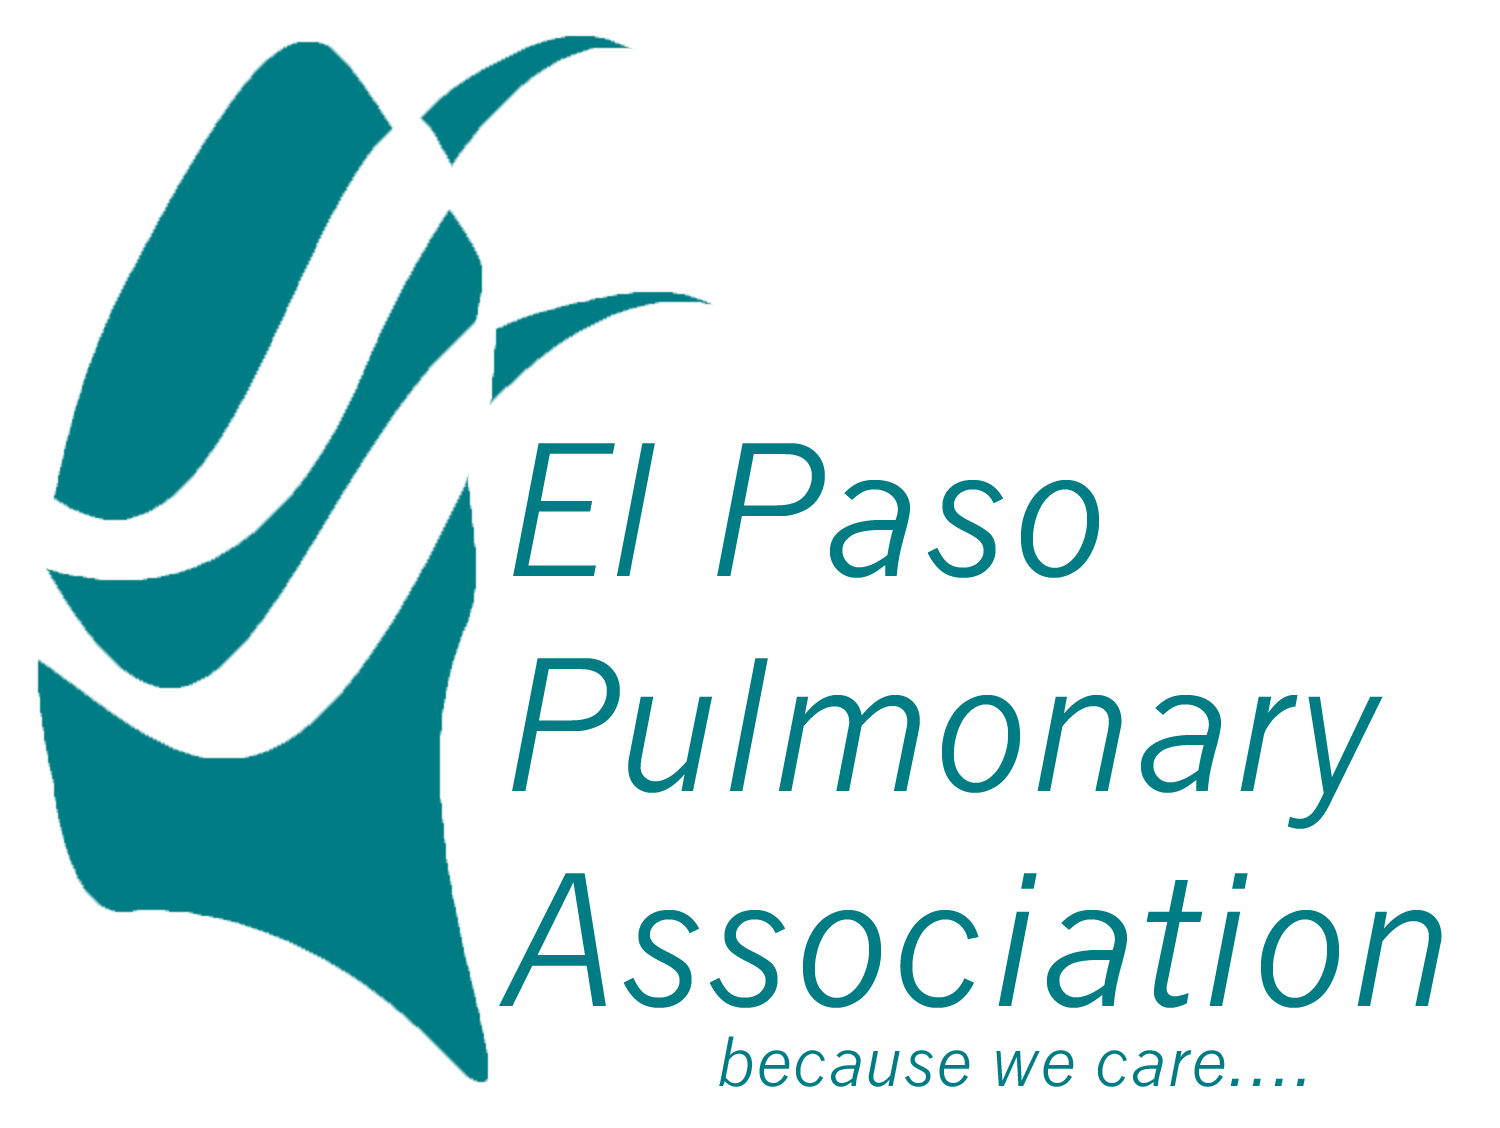 El Paso Pulmonary Association